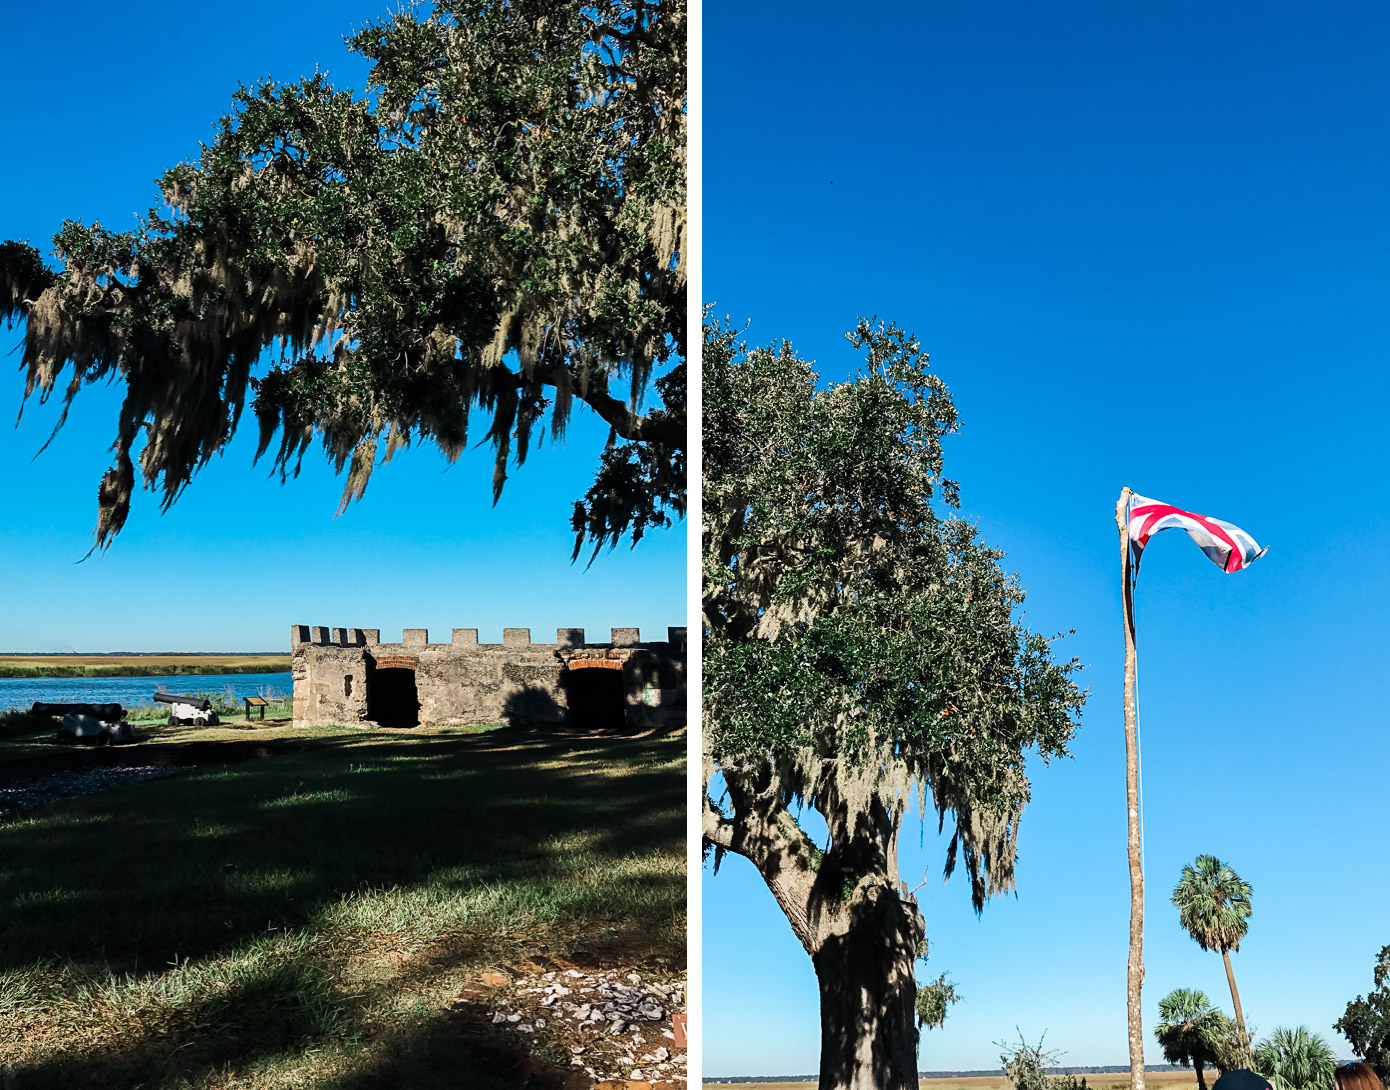 72 Hours with The King and Prince | St. Simons Georgia Travel Guide | Louella Reese Life & Style Blog